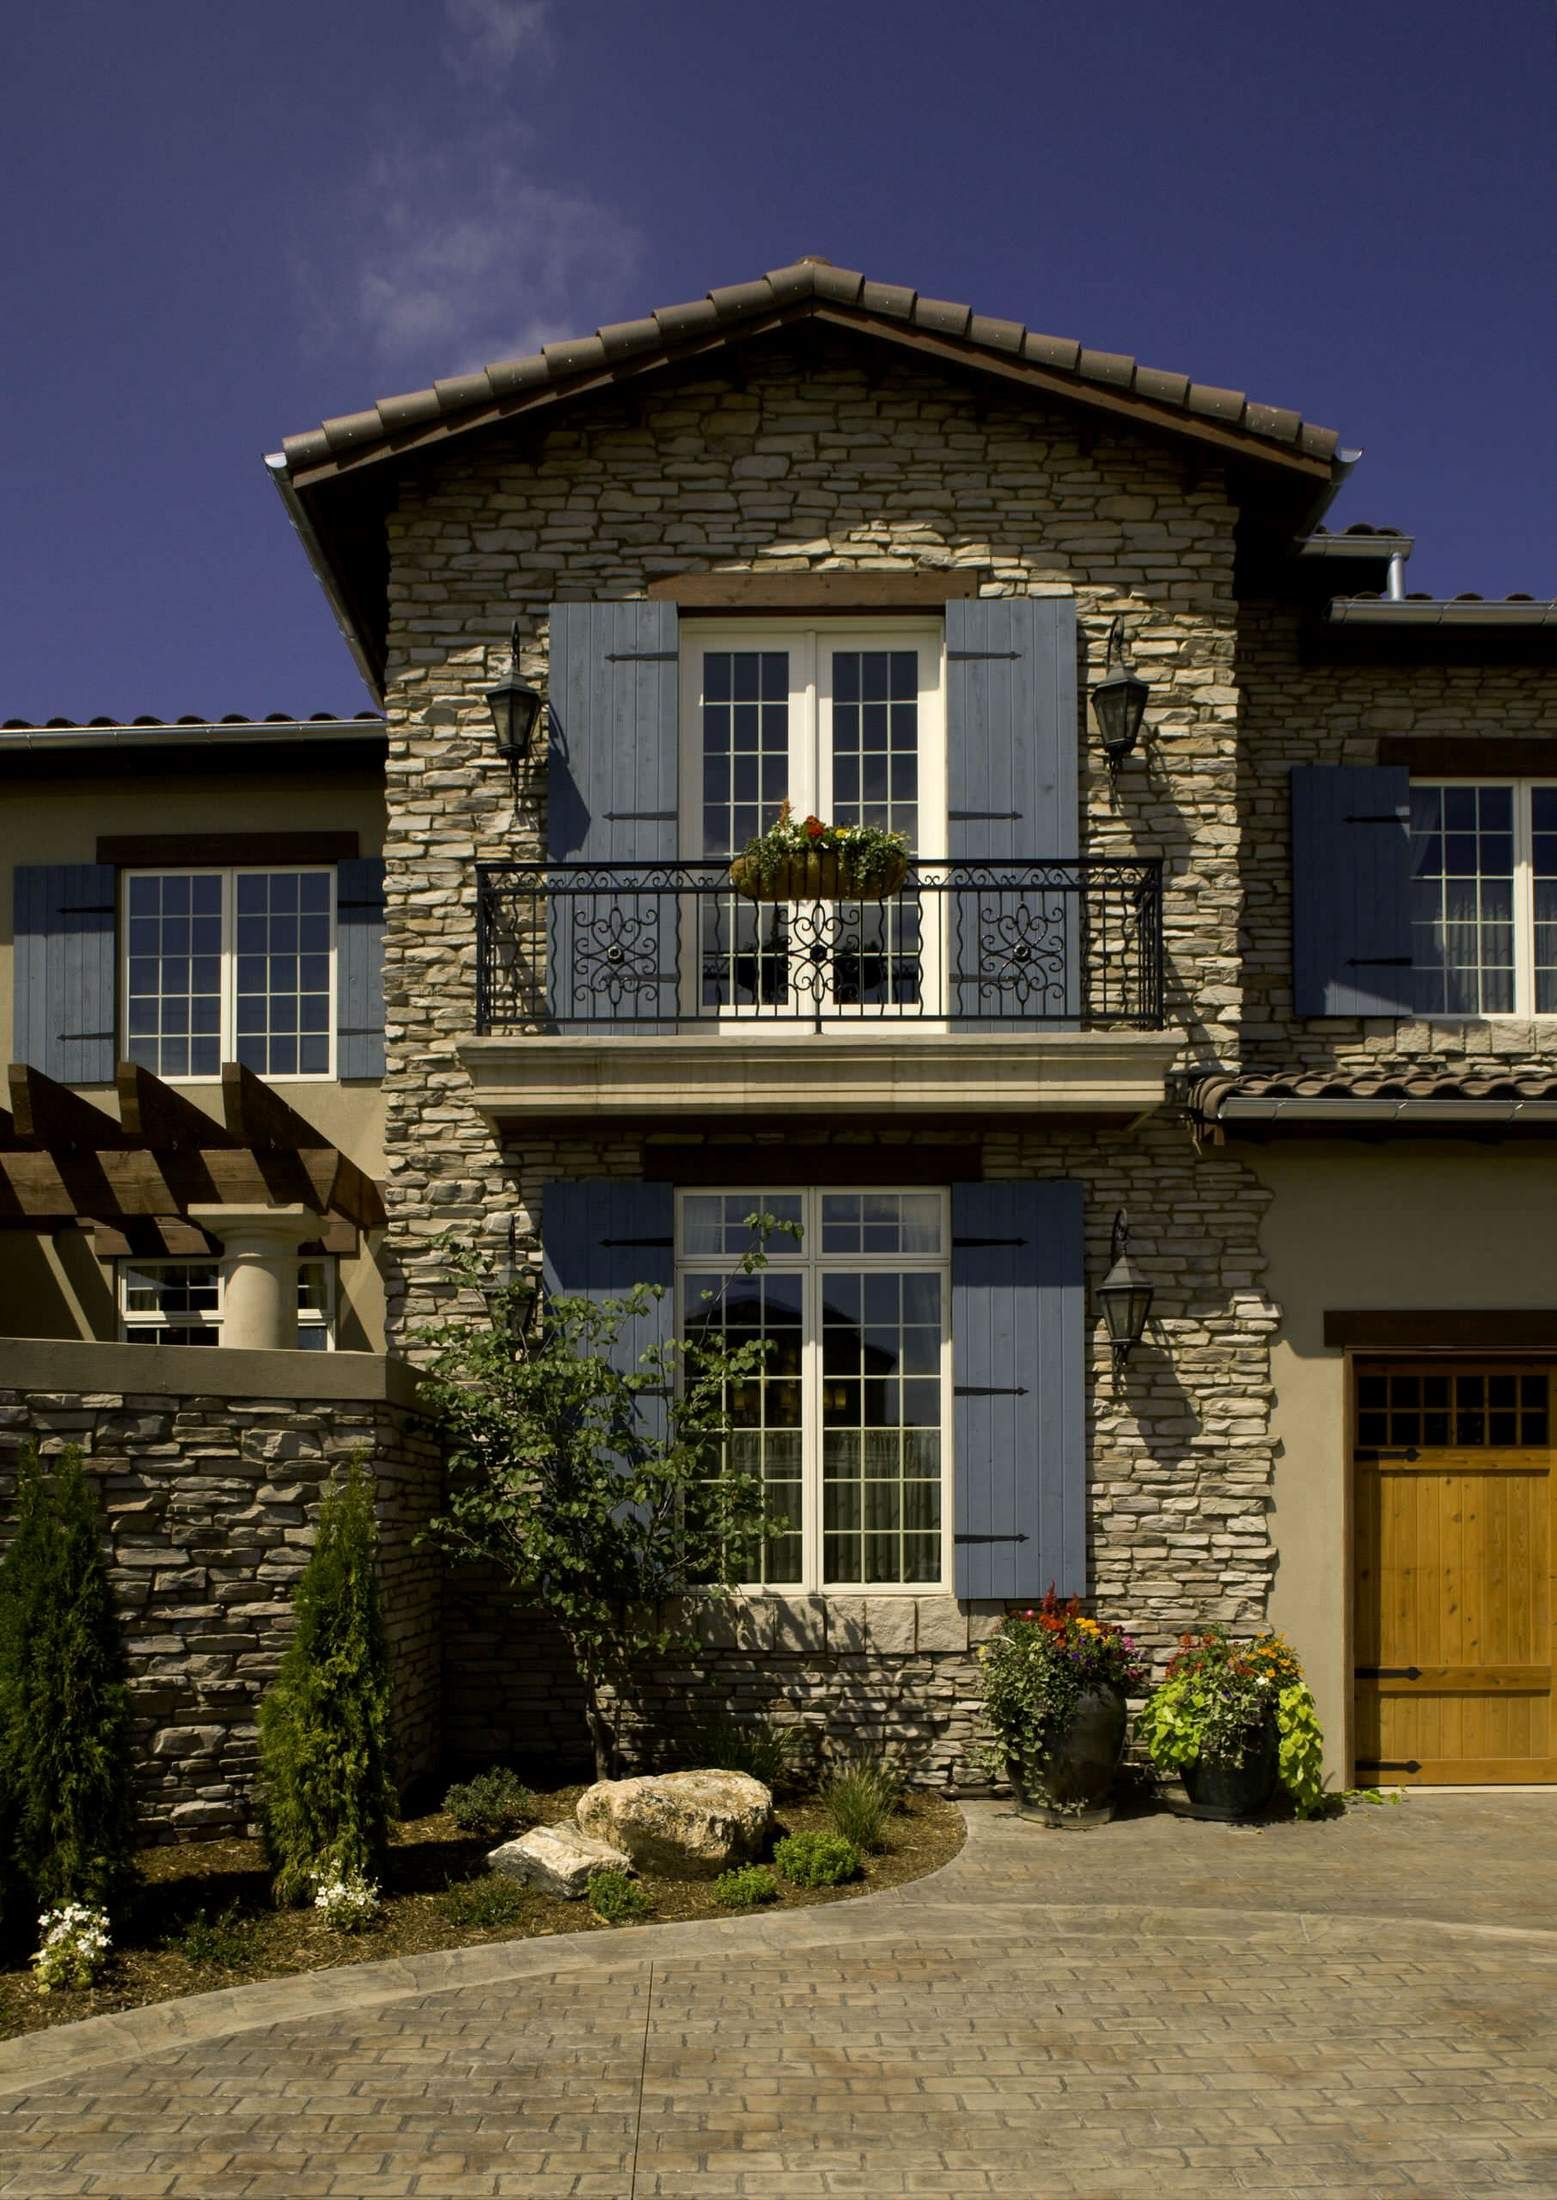 Mediterranean style stone facade with blue window shutters gas